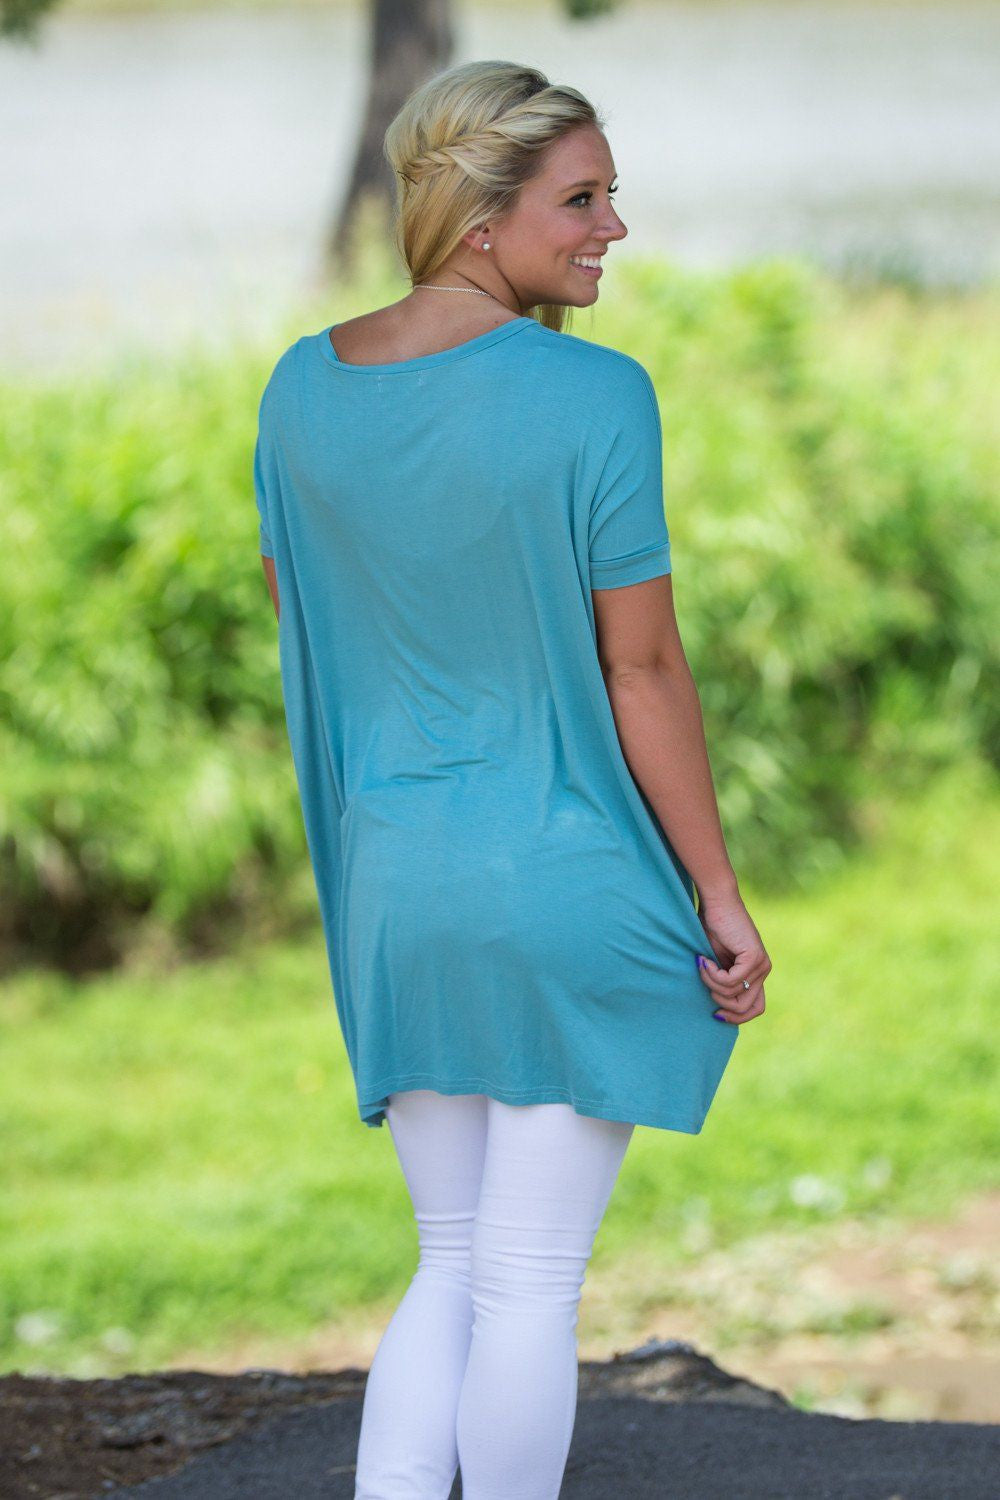 Short Sleeve V-Neck Piko Tunic - Light Teal - Piko Clothing - 2